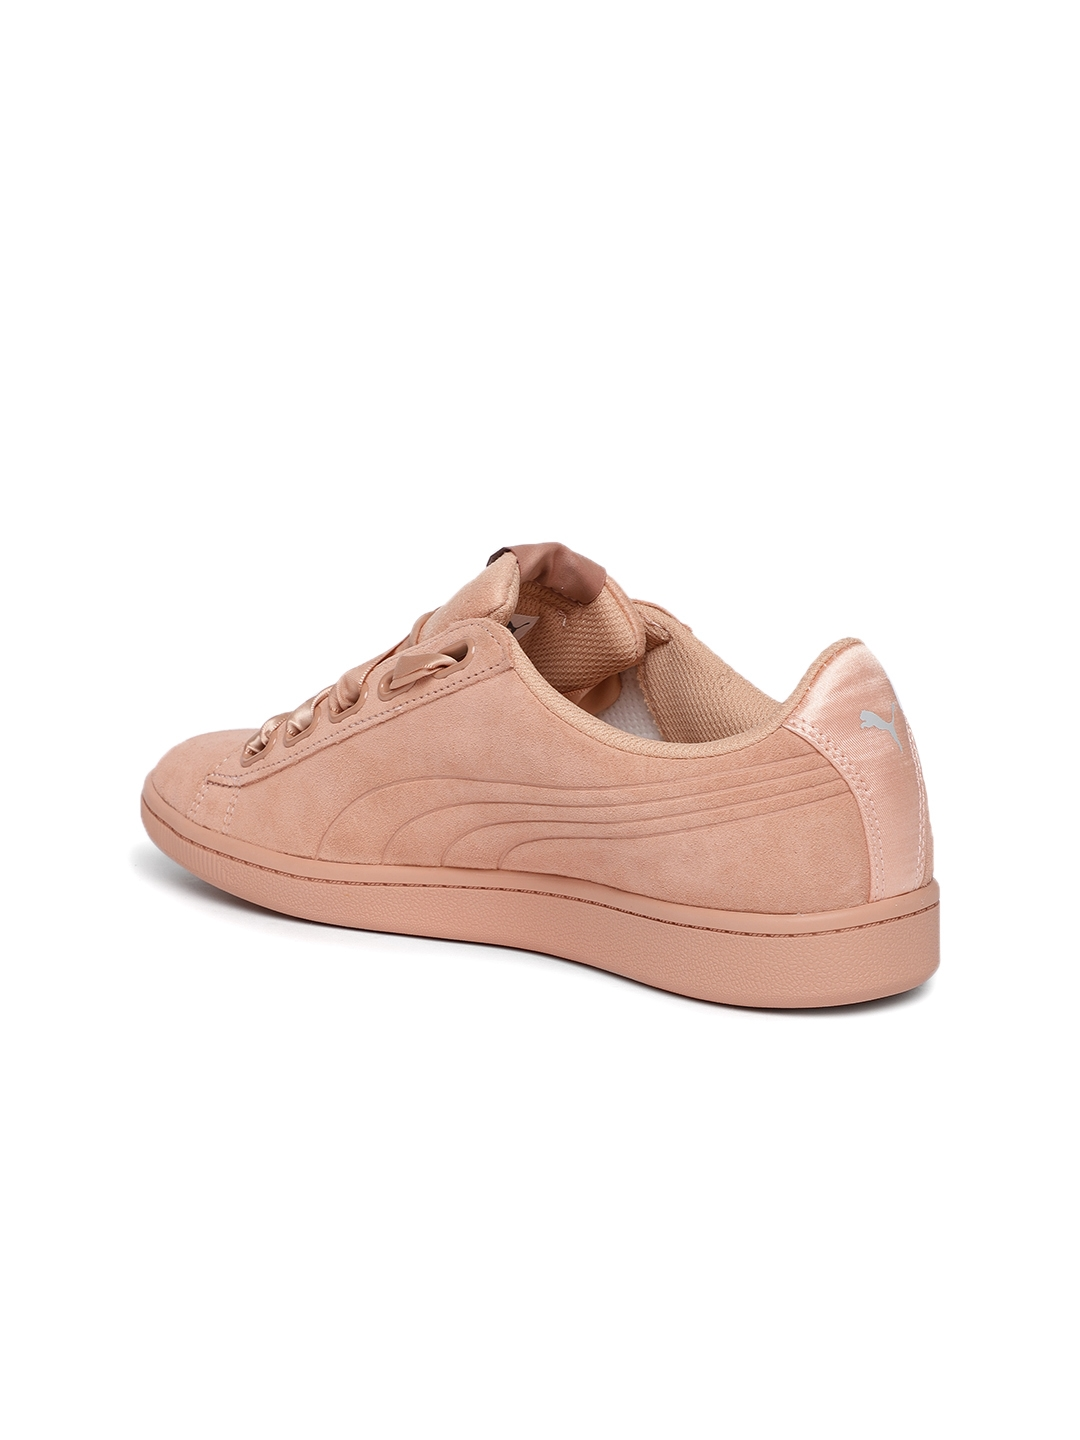 d0793d4be532 Buy Puma Women Brown Vikky Ribbon Suede Sneakers - Casual Shoes for ...